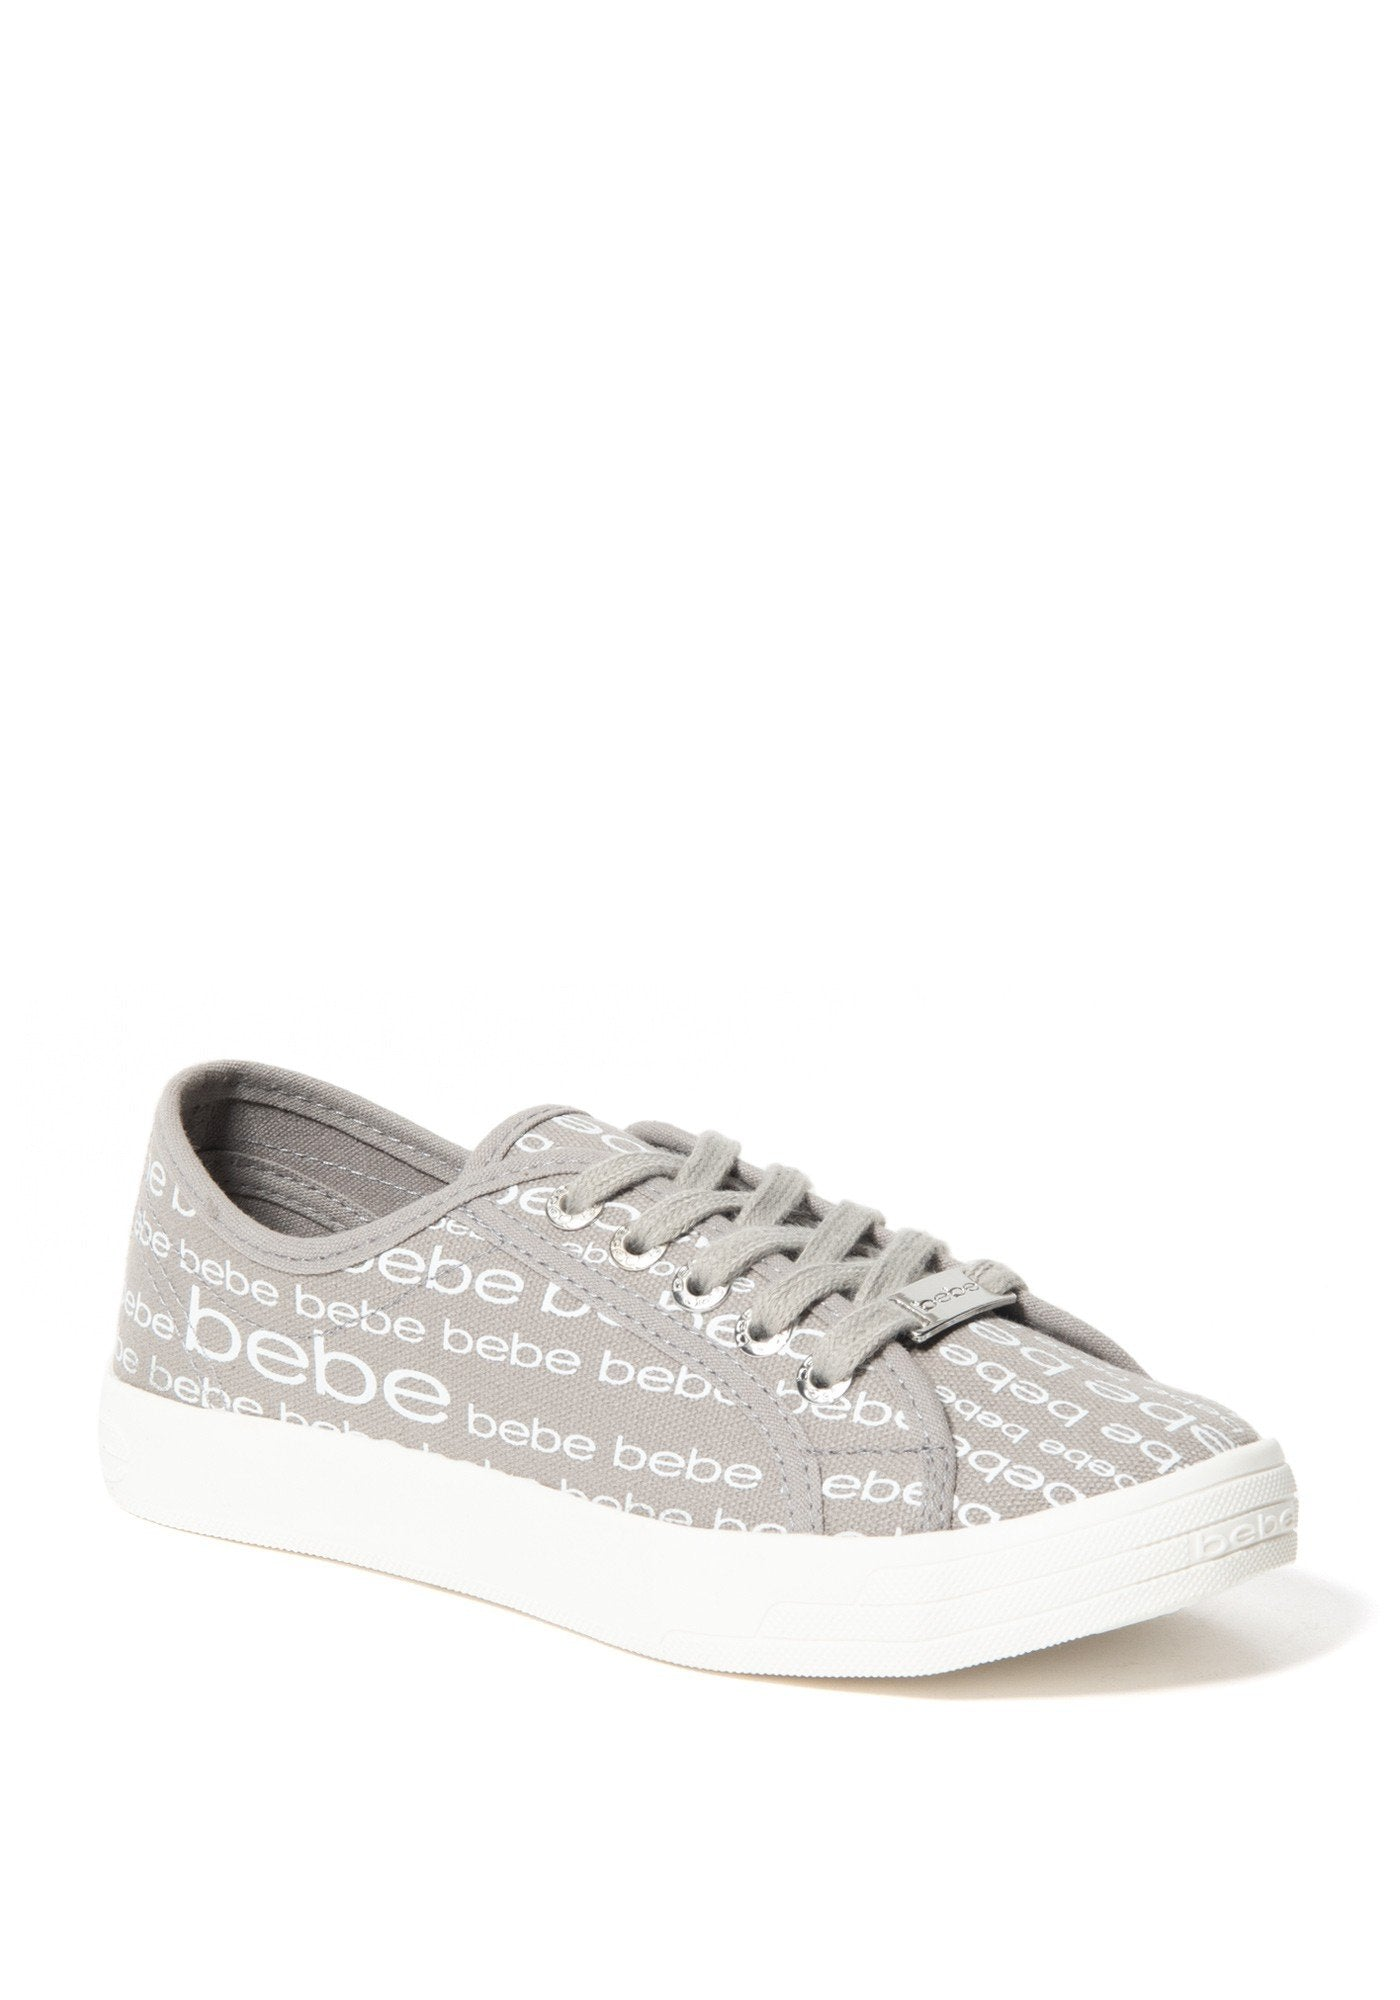 Bebe Women's Daylin Logo Sneakers, Size 6 in Grey Synthetic